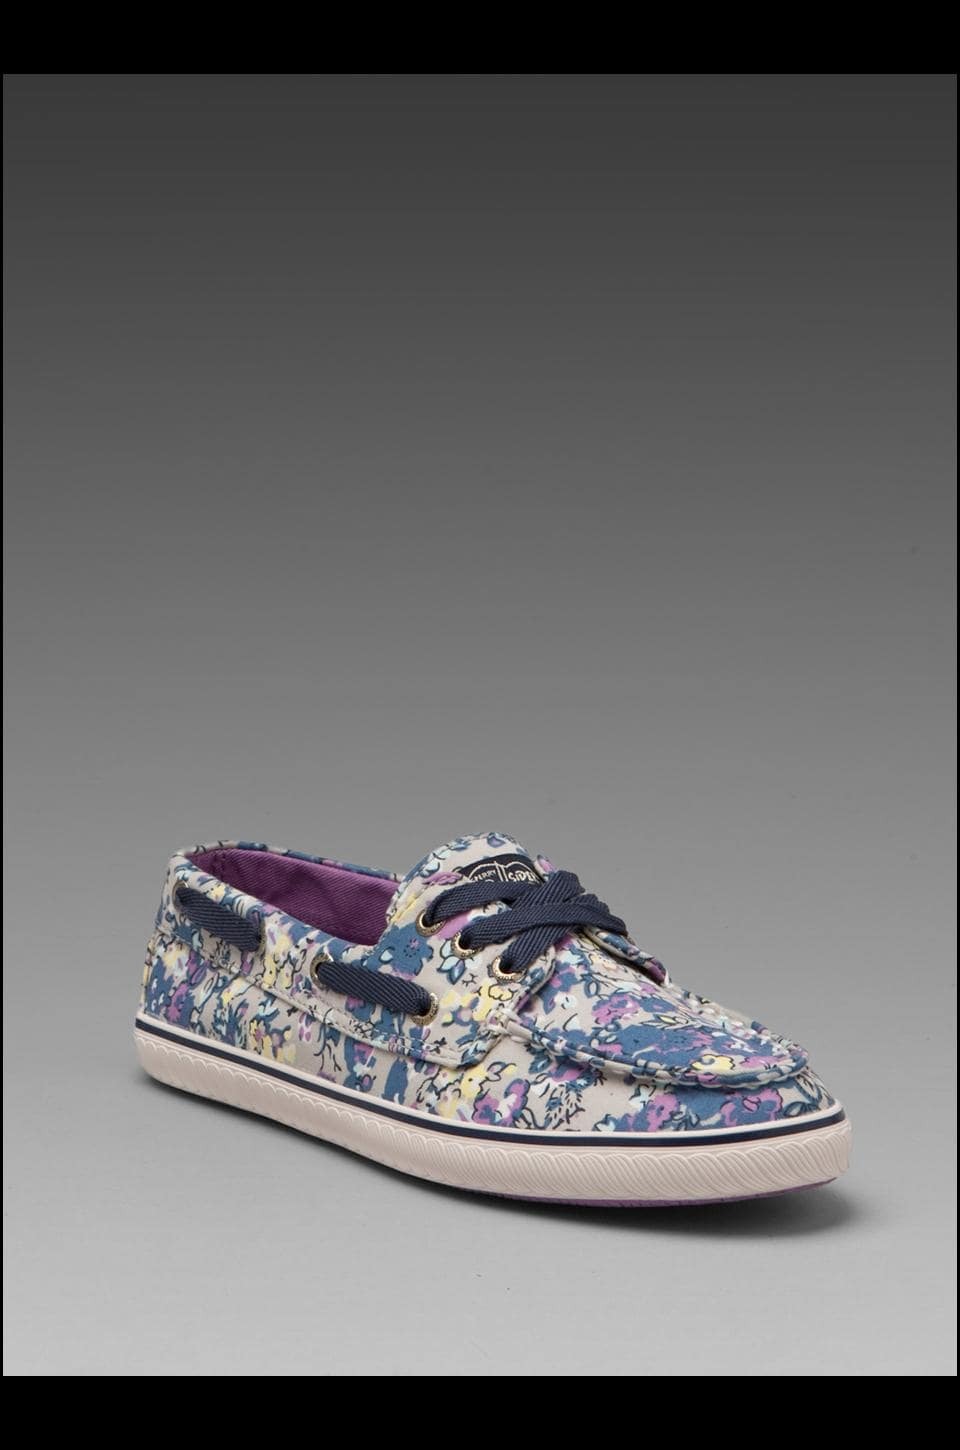 Sperry Top-Sider Cruiser in Plum Ditsy Floral